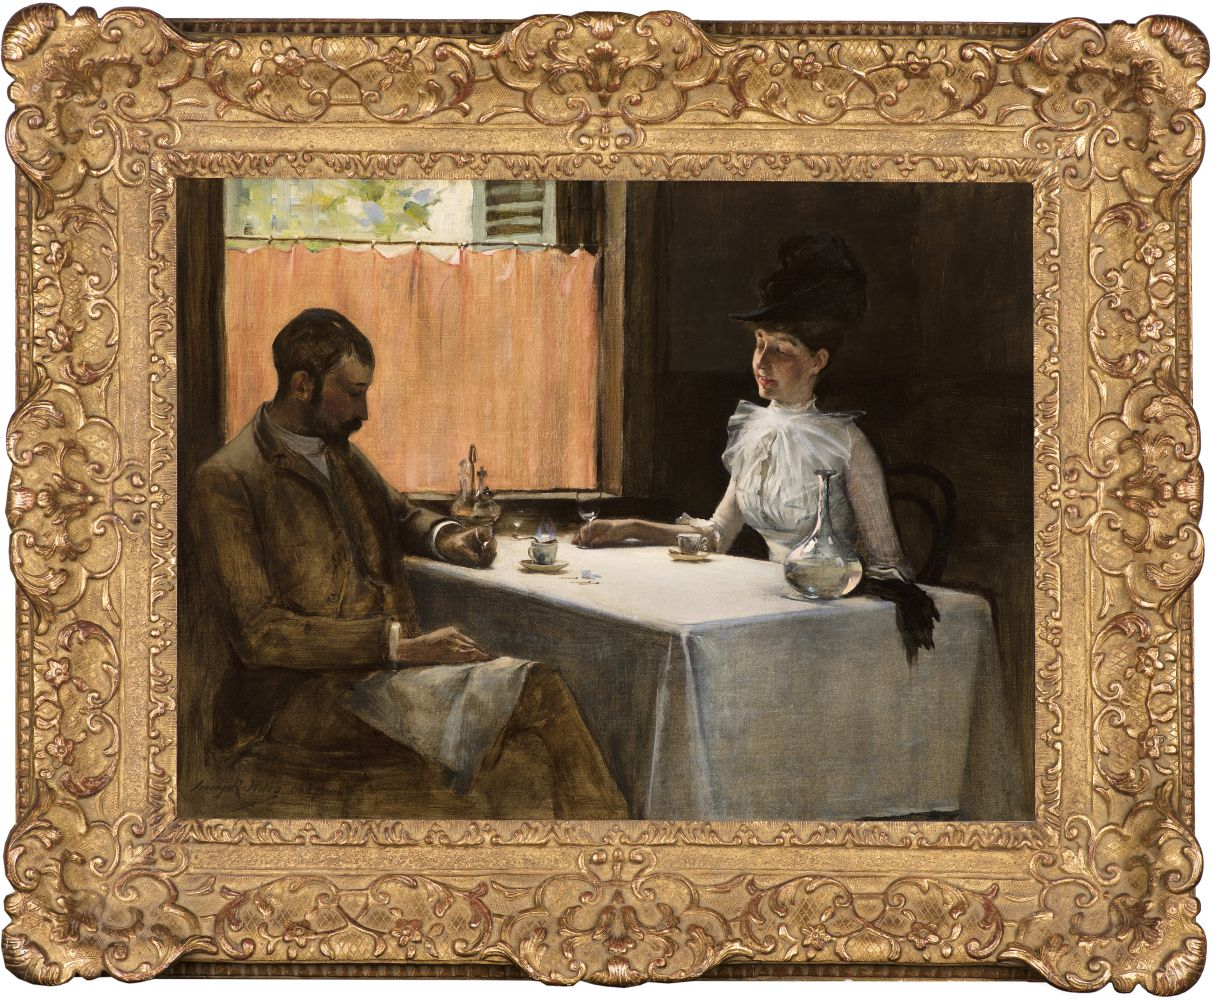 Irving Ramsey Wiles (1861–1948), The Loiterers, 1887, oil on canvas, 18 x 24 in., signed and dated lower left: Irving R. Wiles 1887. The artist and his wife seated in a Parisian cafe. (framed)